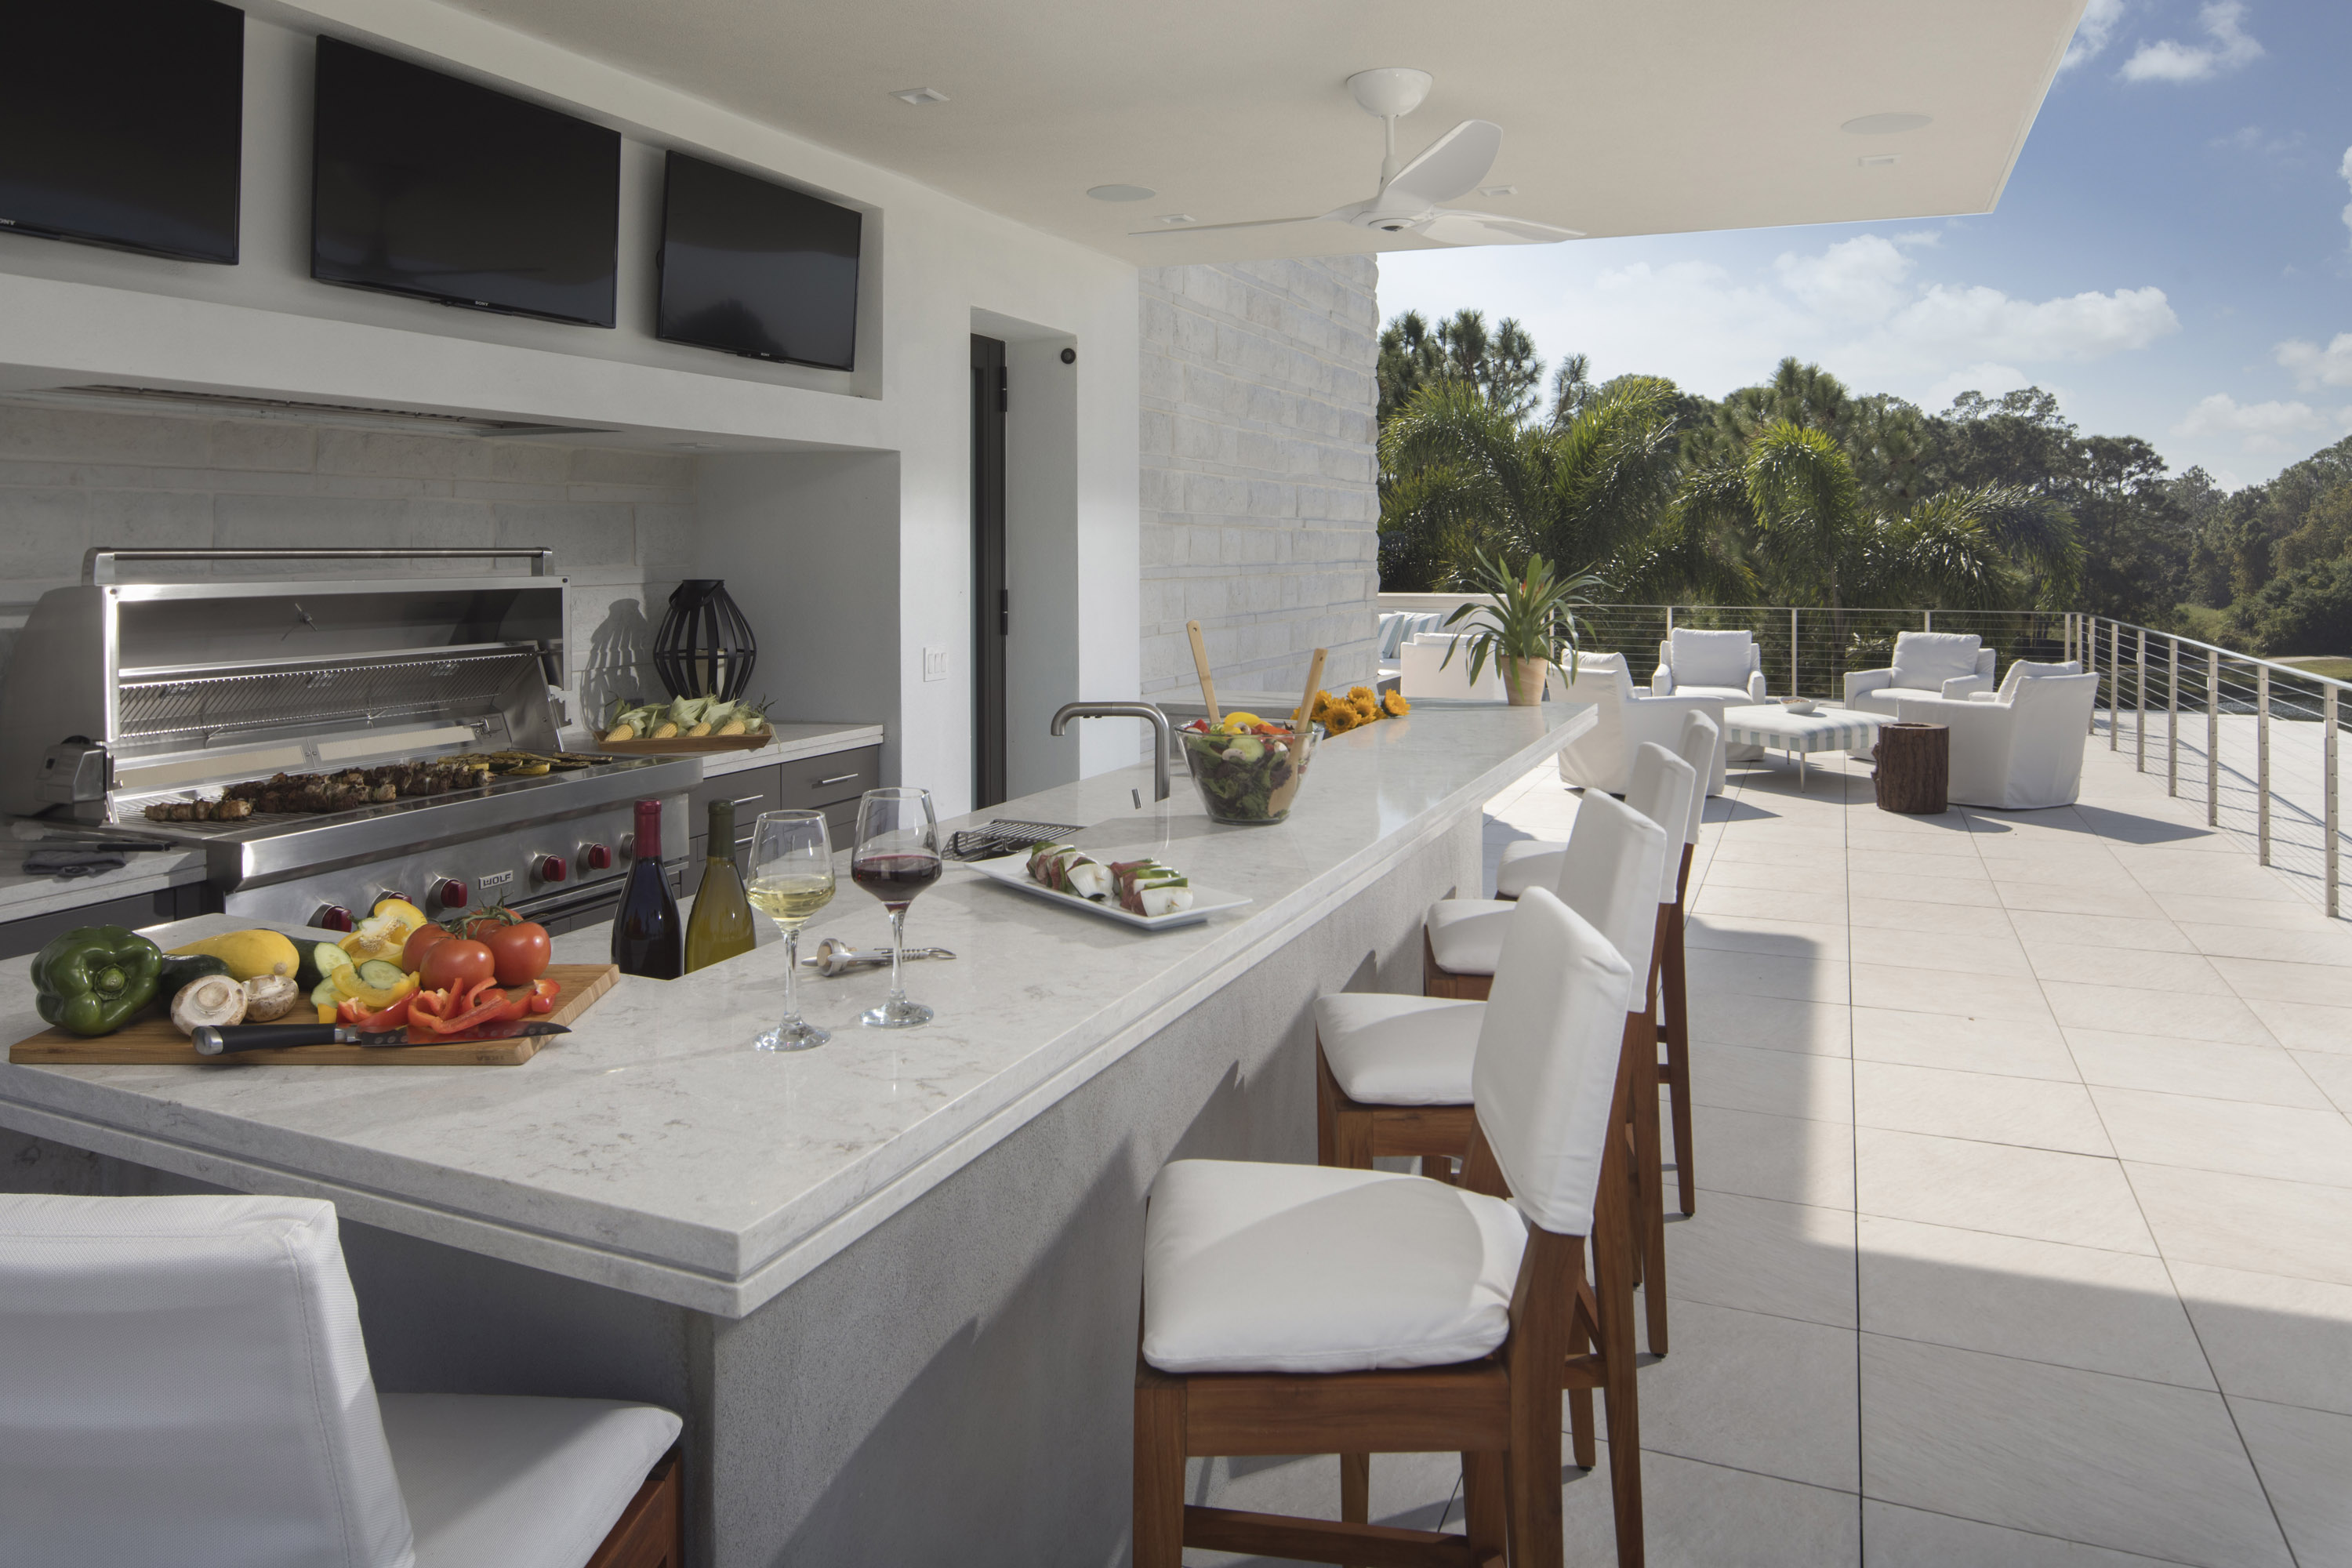 Outdoor Kitchens A Must Have Amenity For Florida Homes